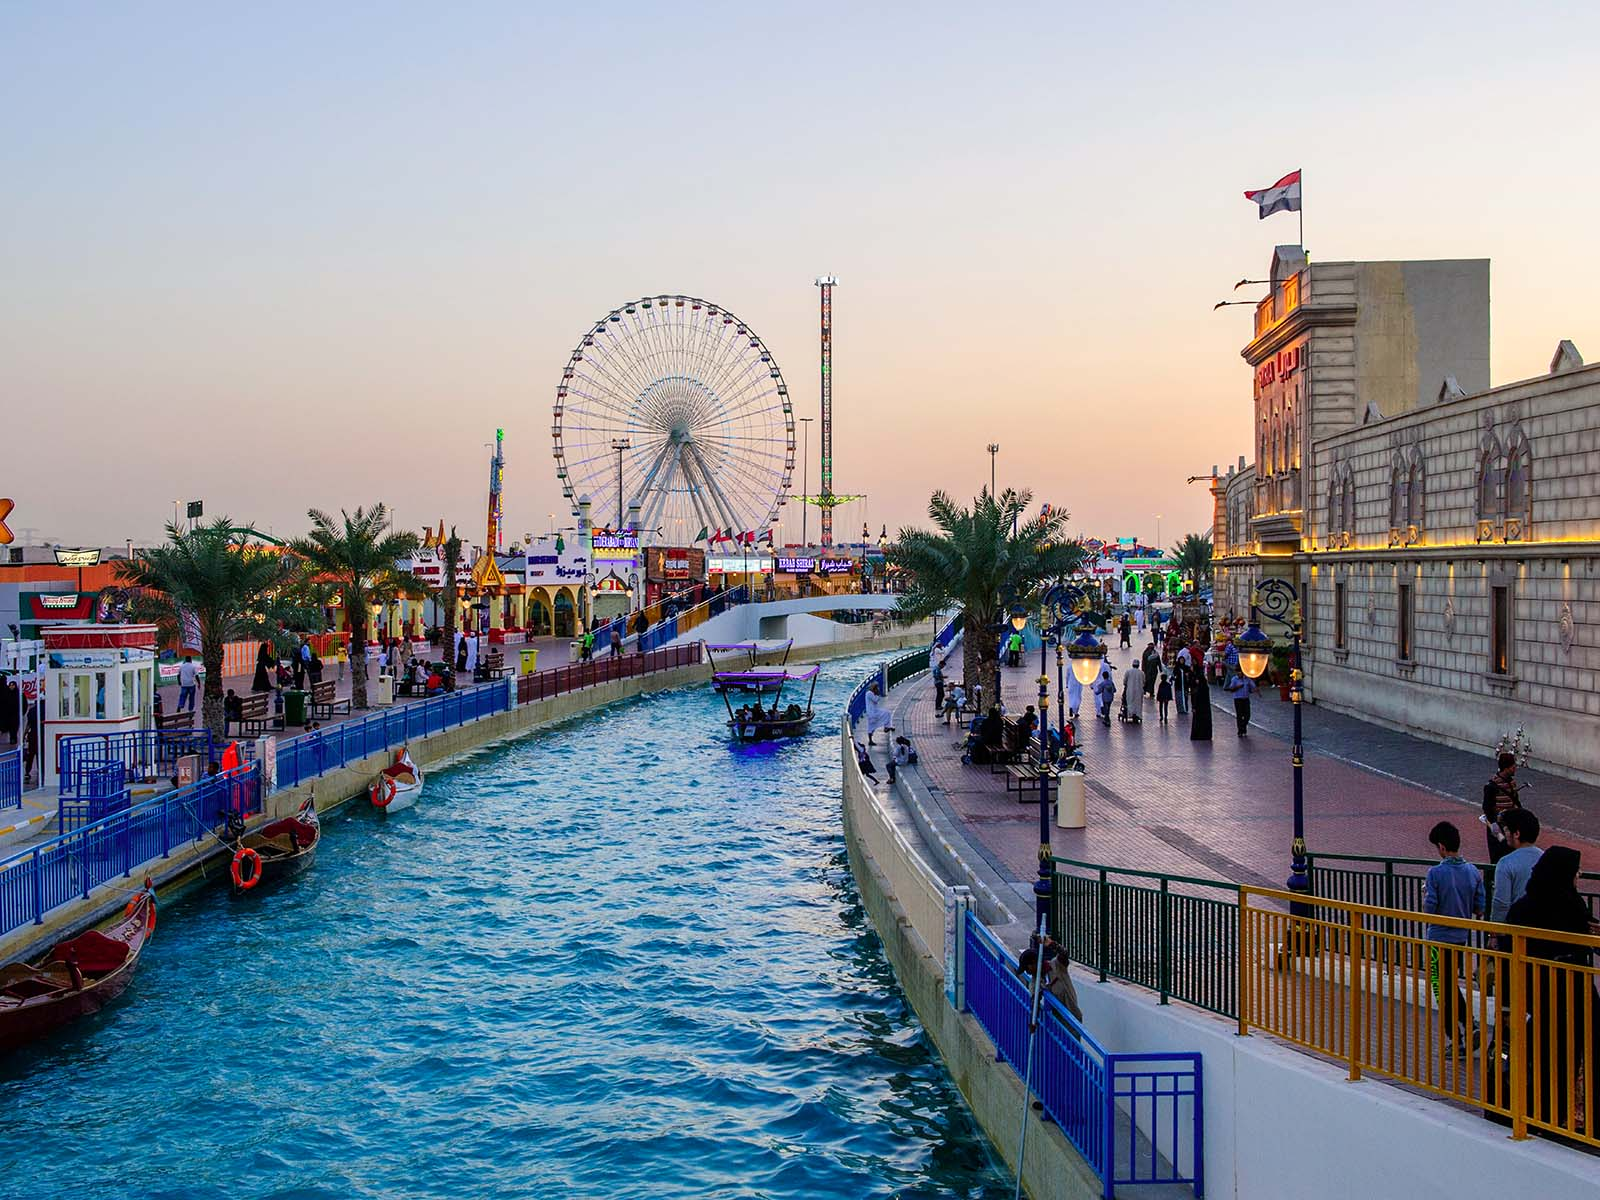 Global Village Dubai, Global Village Dubai | Places to Visit in Dubai | OceanAir Travels